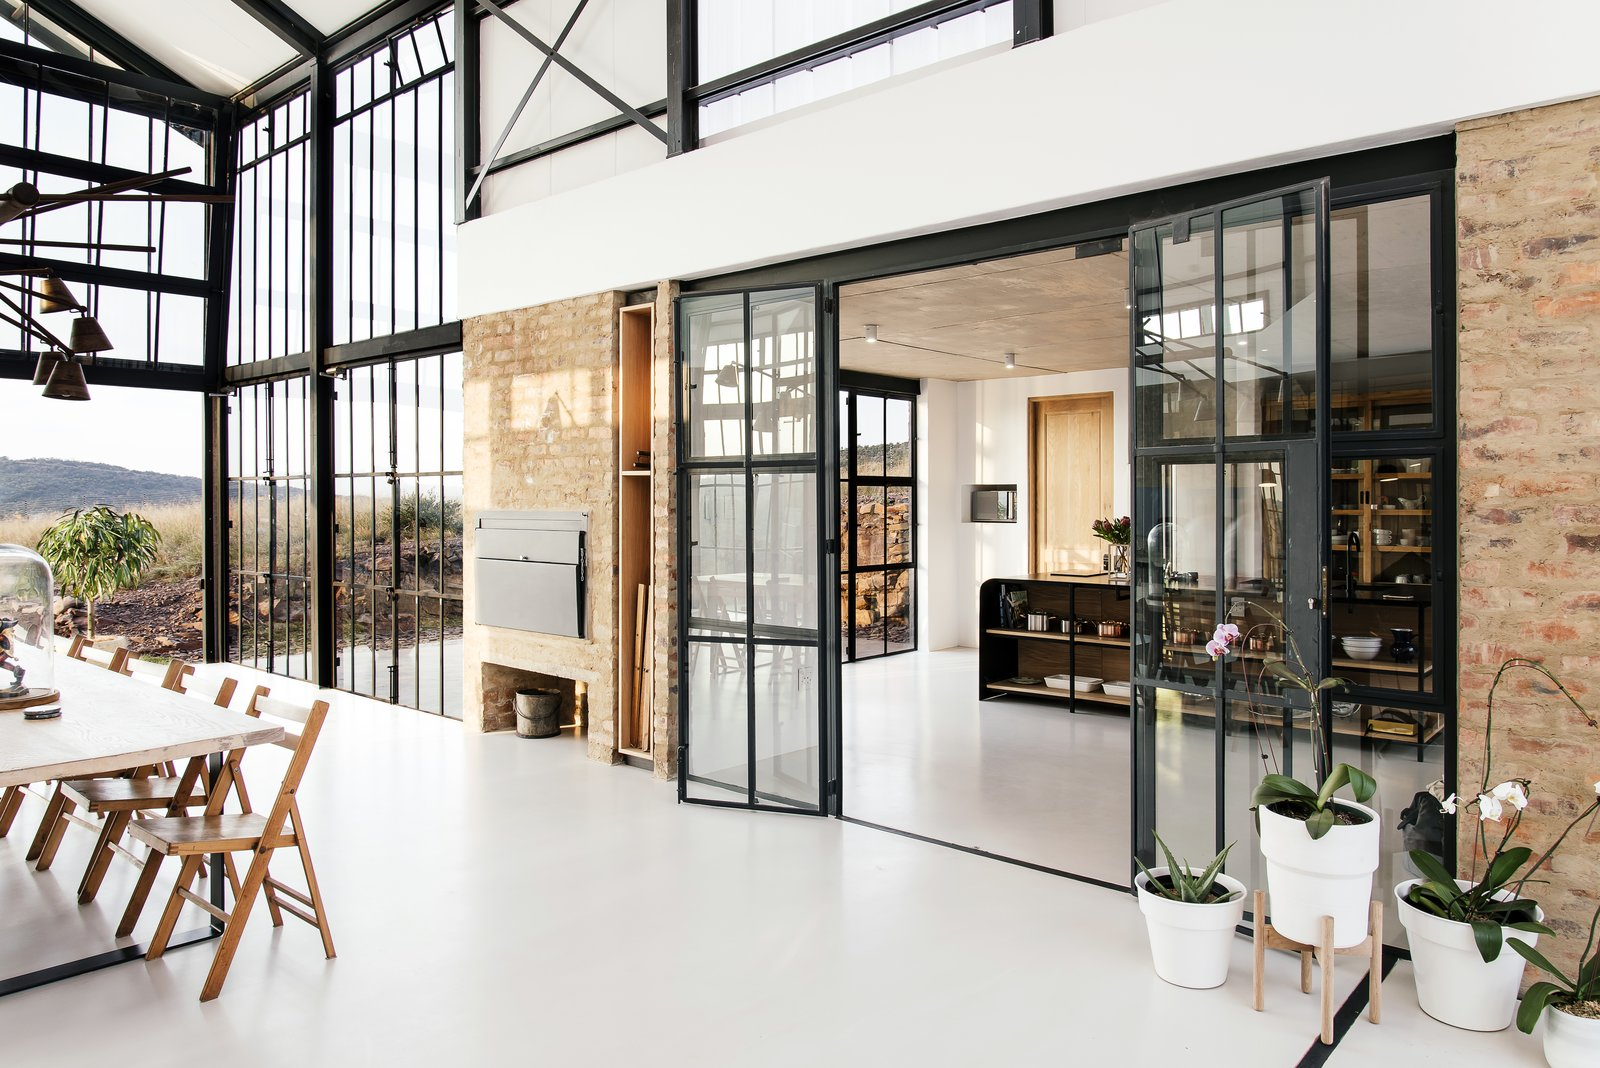 Dining, Concrete, Table, Pendant, Accent, Chair, and Ceiling The dining room connects to the kitchen.  Best Dining Accent Ceiling Pendant Photos from A South African Architect Designs an Off-Grid, Modern Home For Her Parents